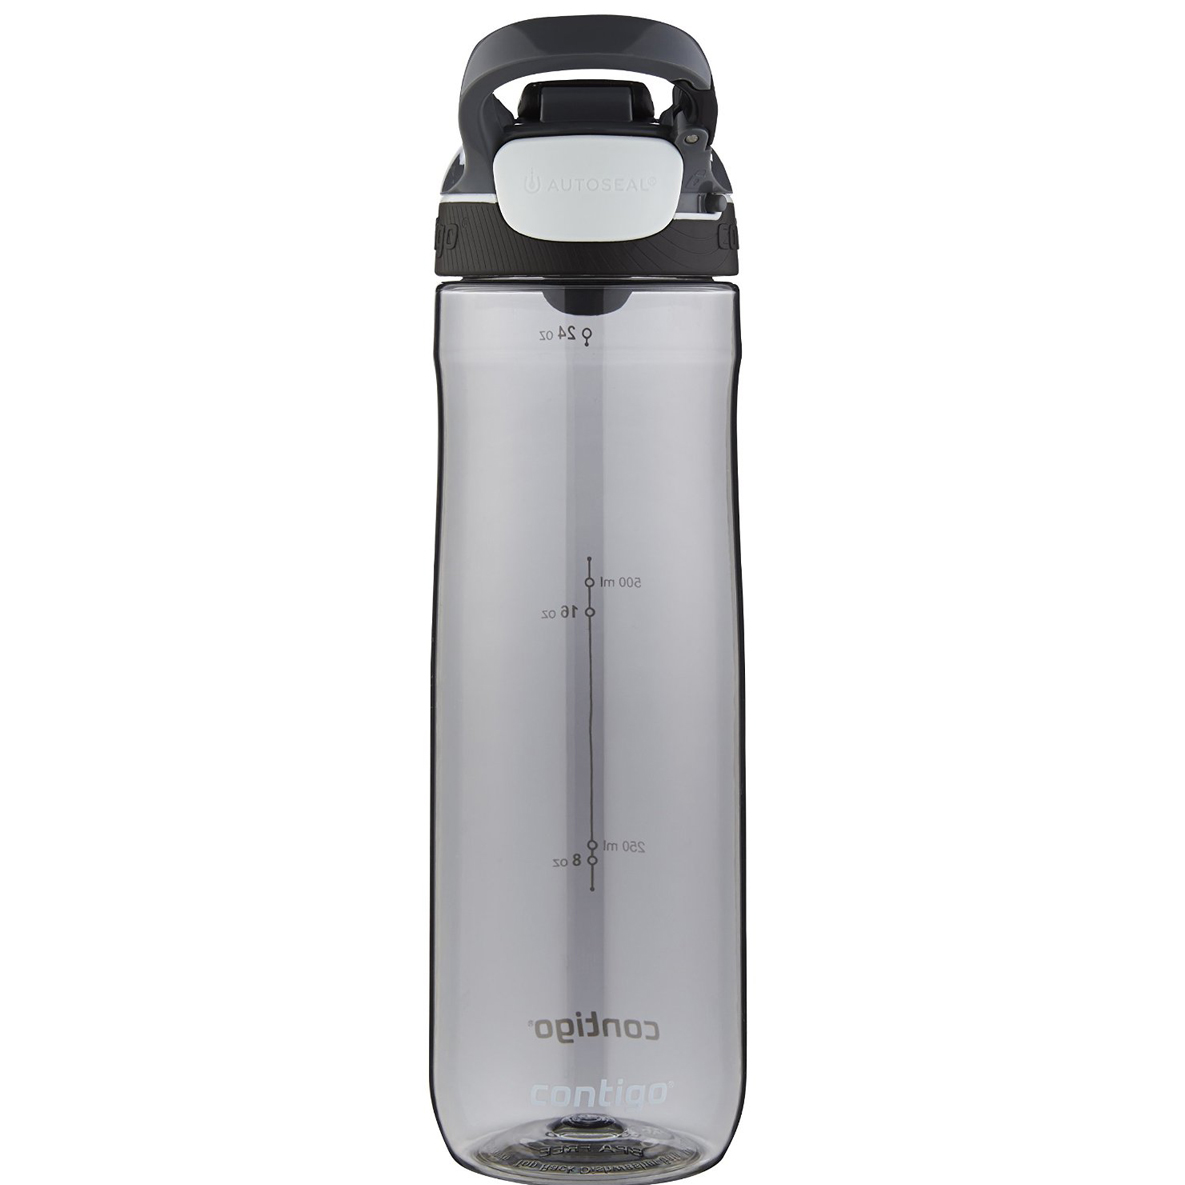 Contigo-24-oz-Cortland-Autoseal-Water-Bottle miniature 14